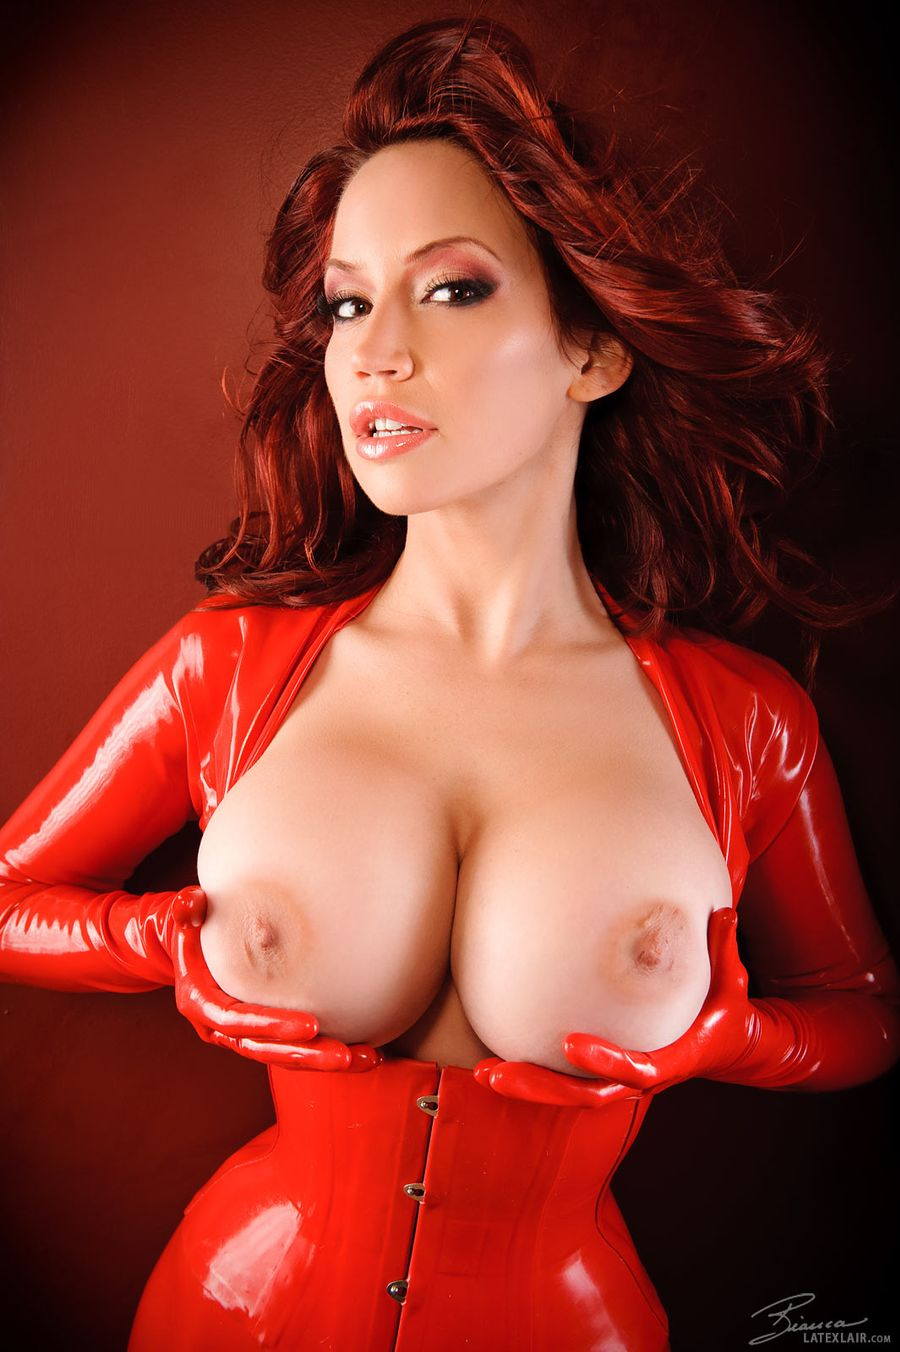 Bianca beauchamp photo gallery